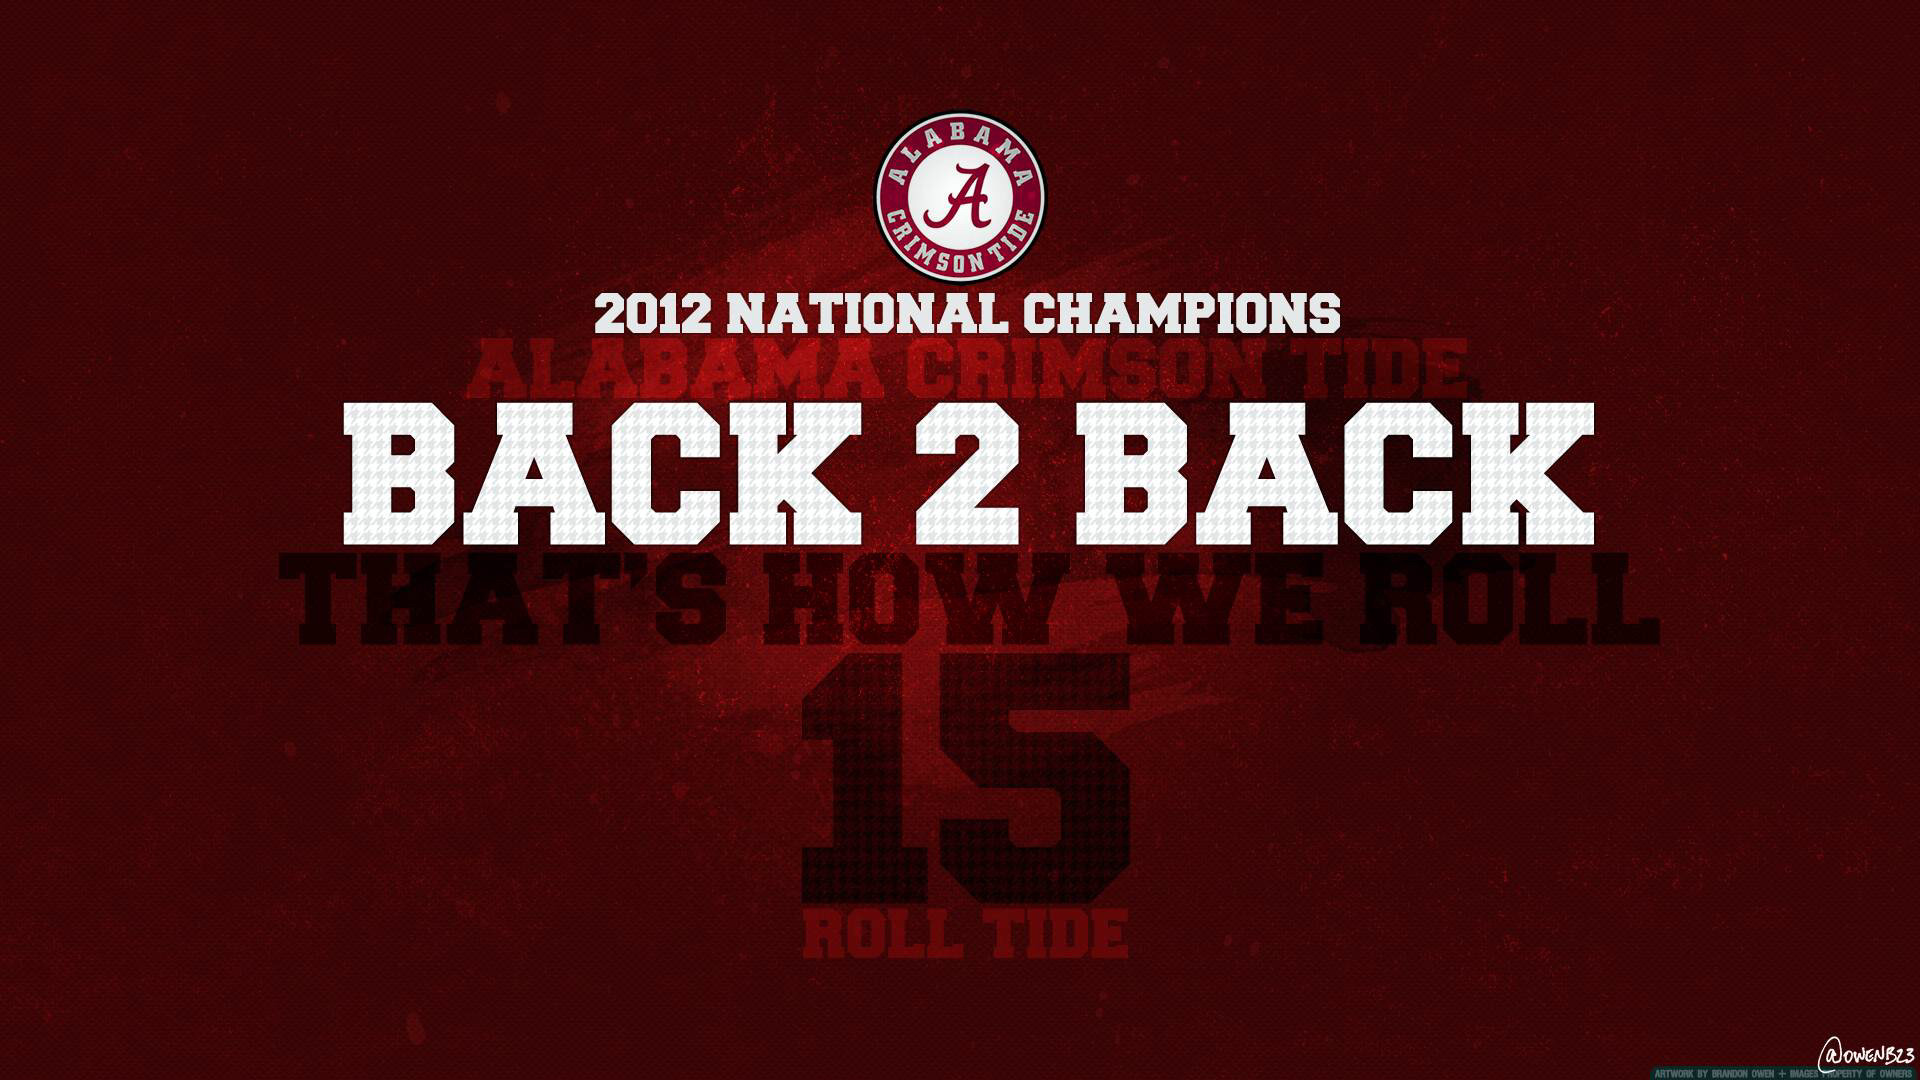 The official University of Alabama Crimson Tide new tab high resolution  images to theme your browser.